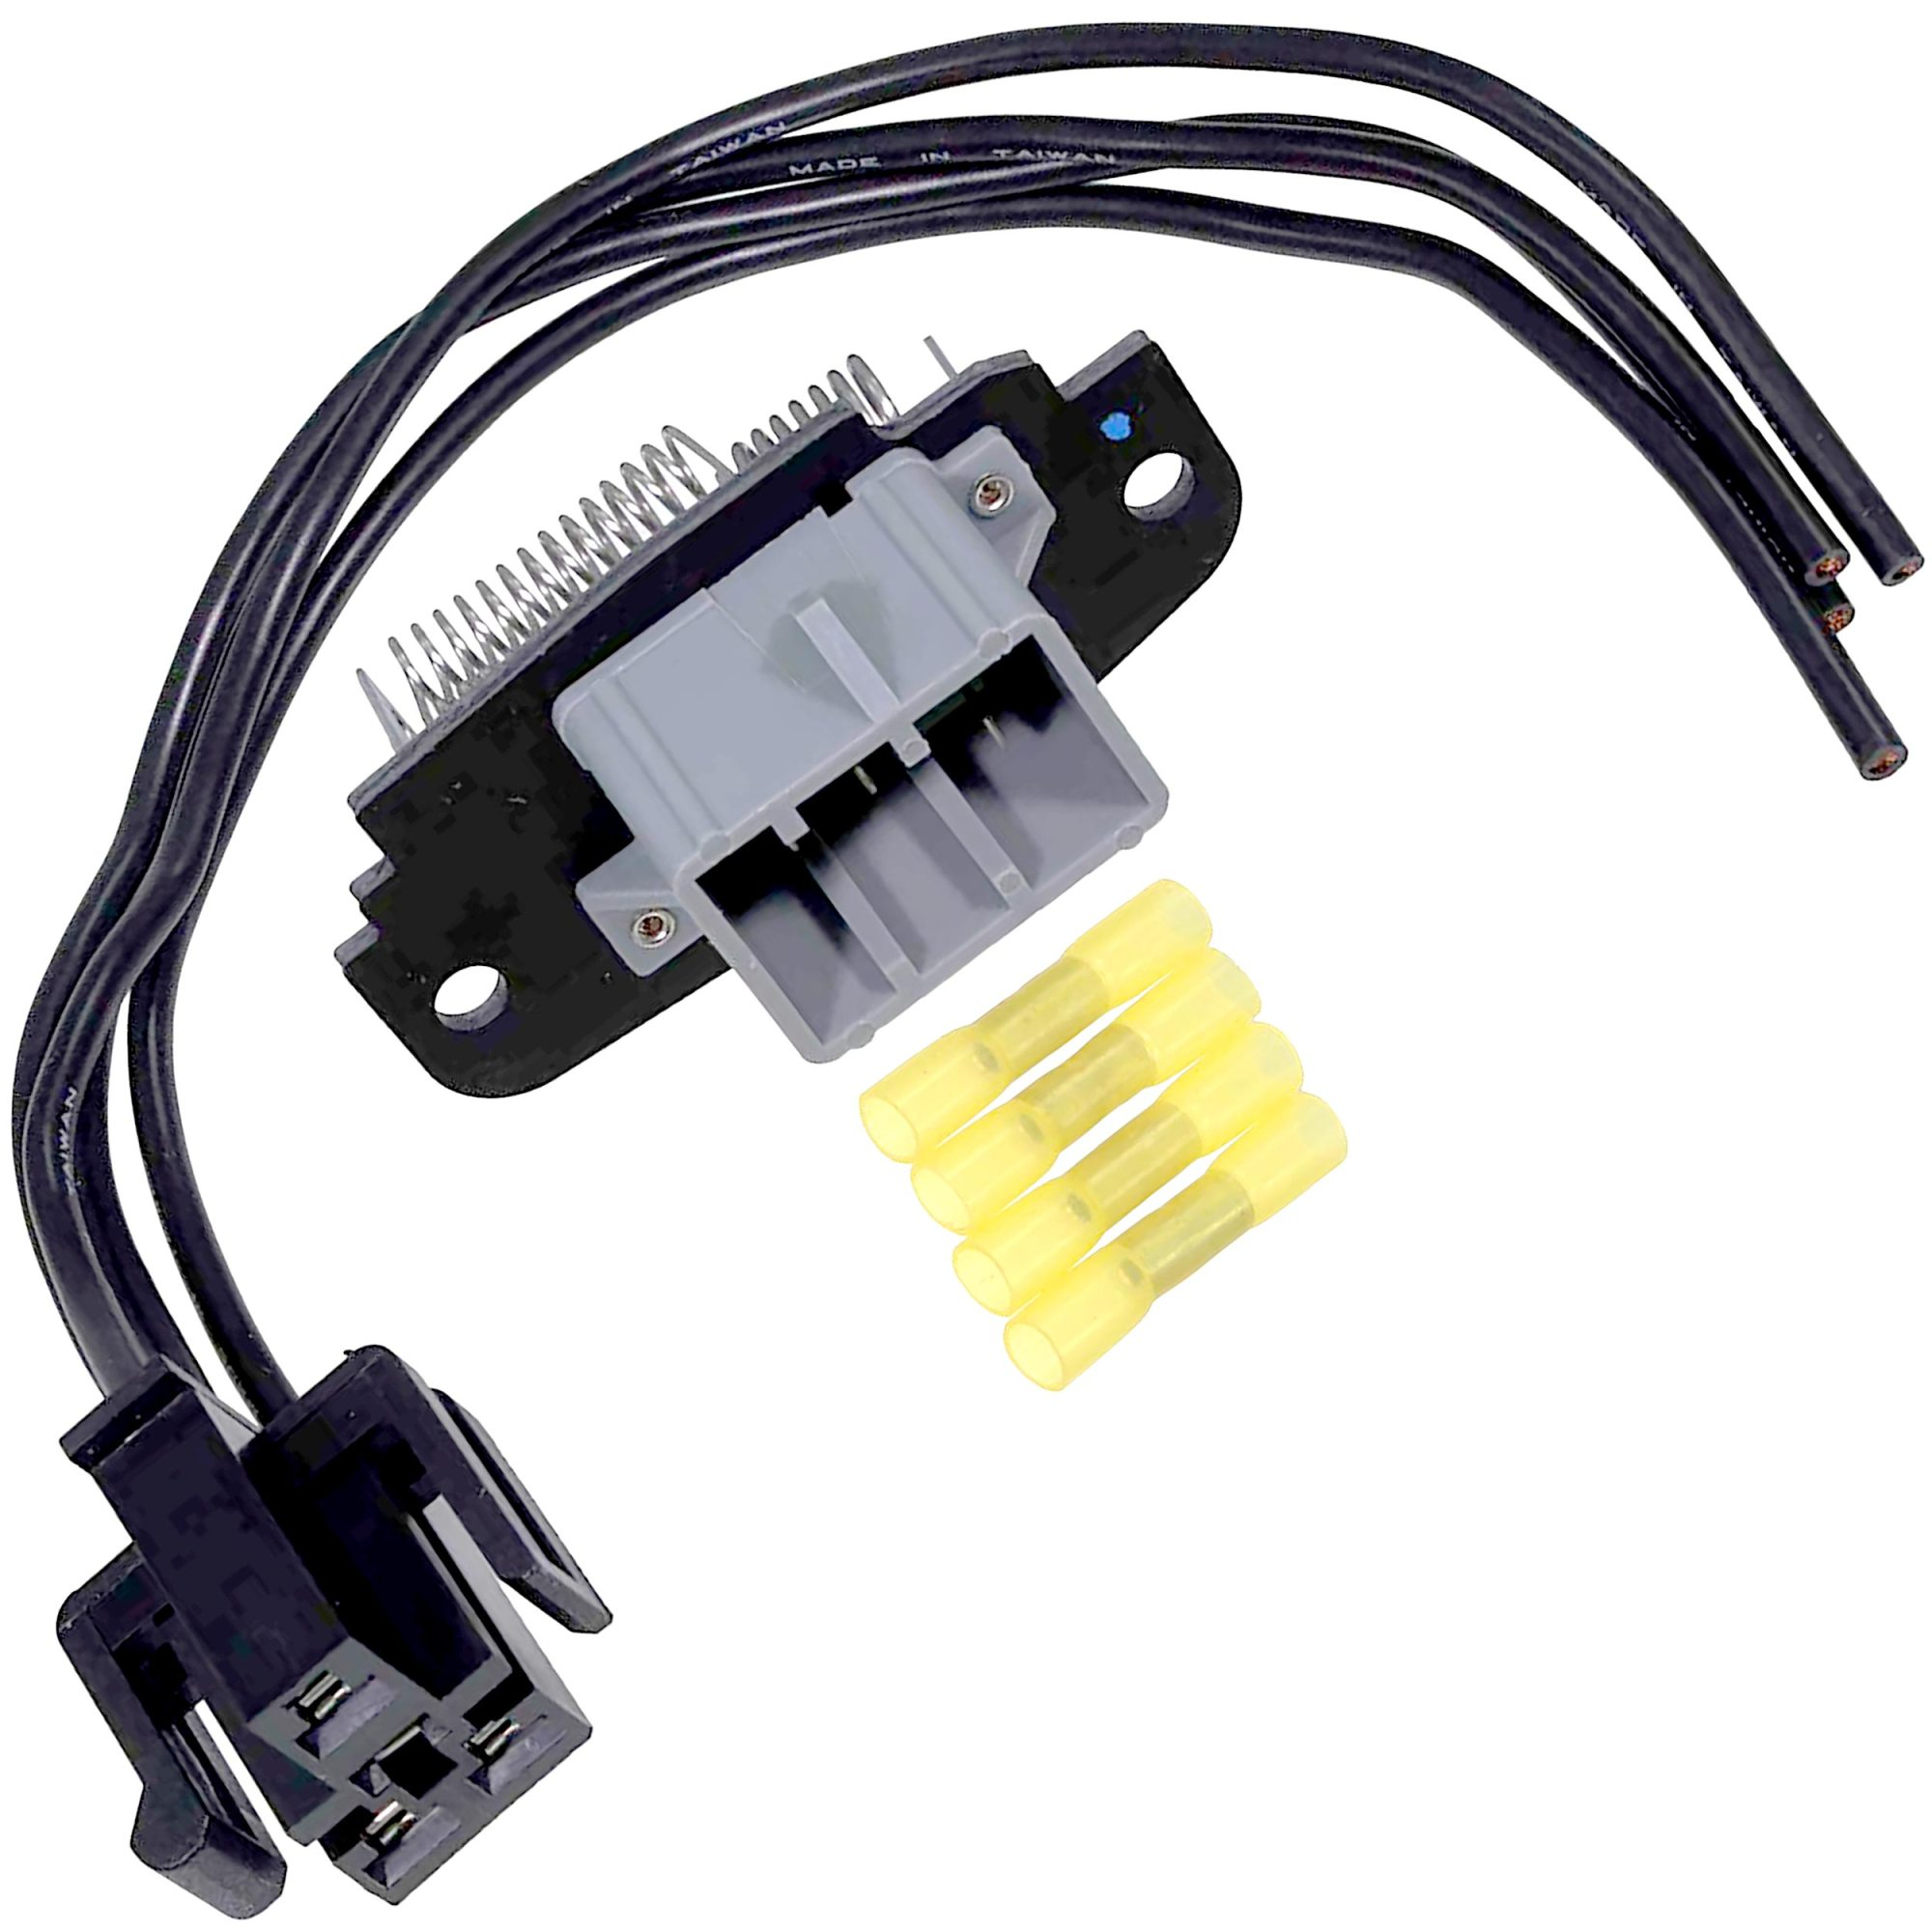 hight resolution of brand new blower motor speed control resistor includes wiring harness pigtail connector fits 1995 2003 ford explorer front ac heater